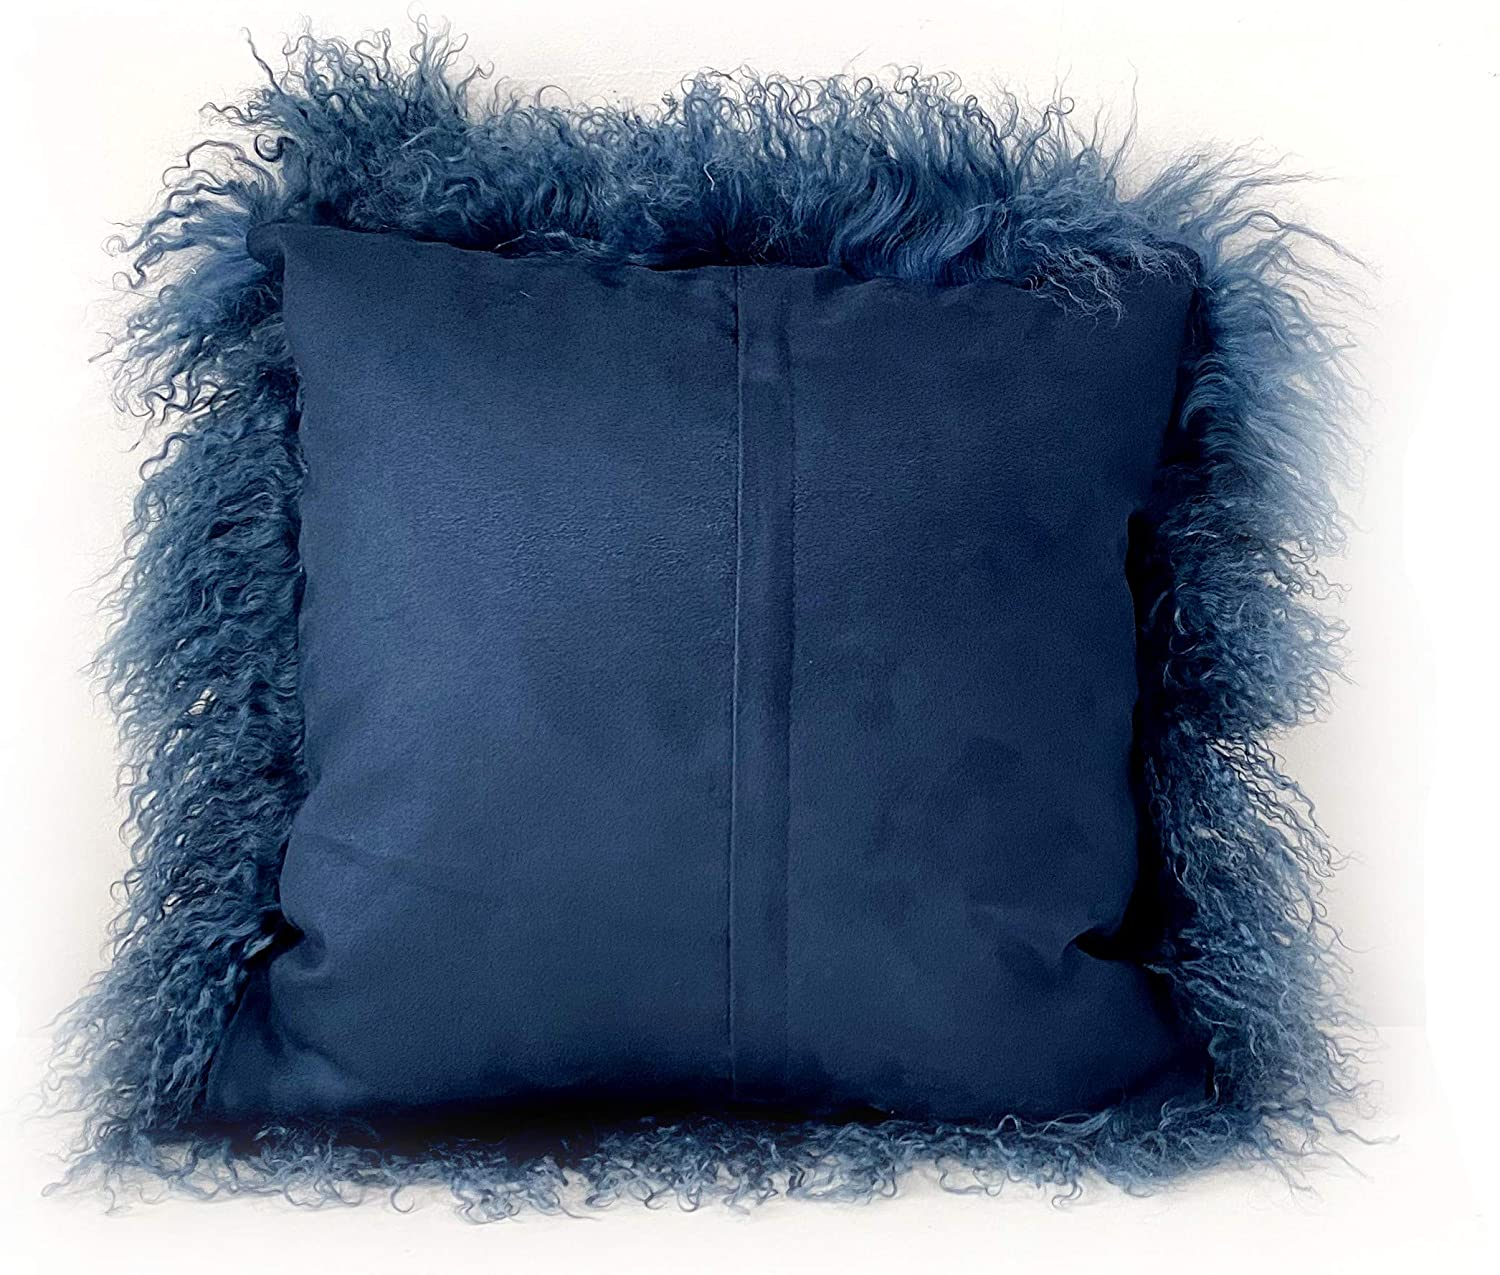 Kumiq 100 Real Mongolian Lamb Fur Curly Wool Pillow Cushion Home Decorative Sheepskin Throw Pillow With Insert Included 16x16in Blue Kitchen Dining Amazon Com